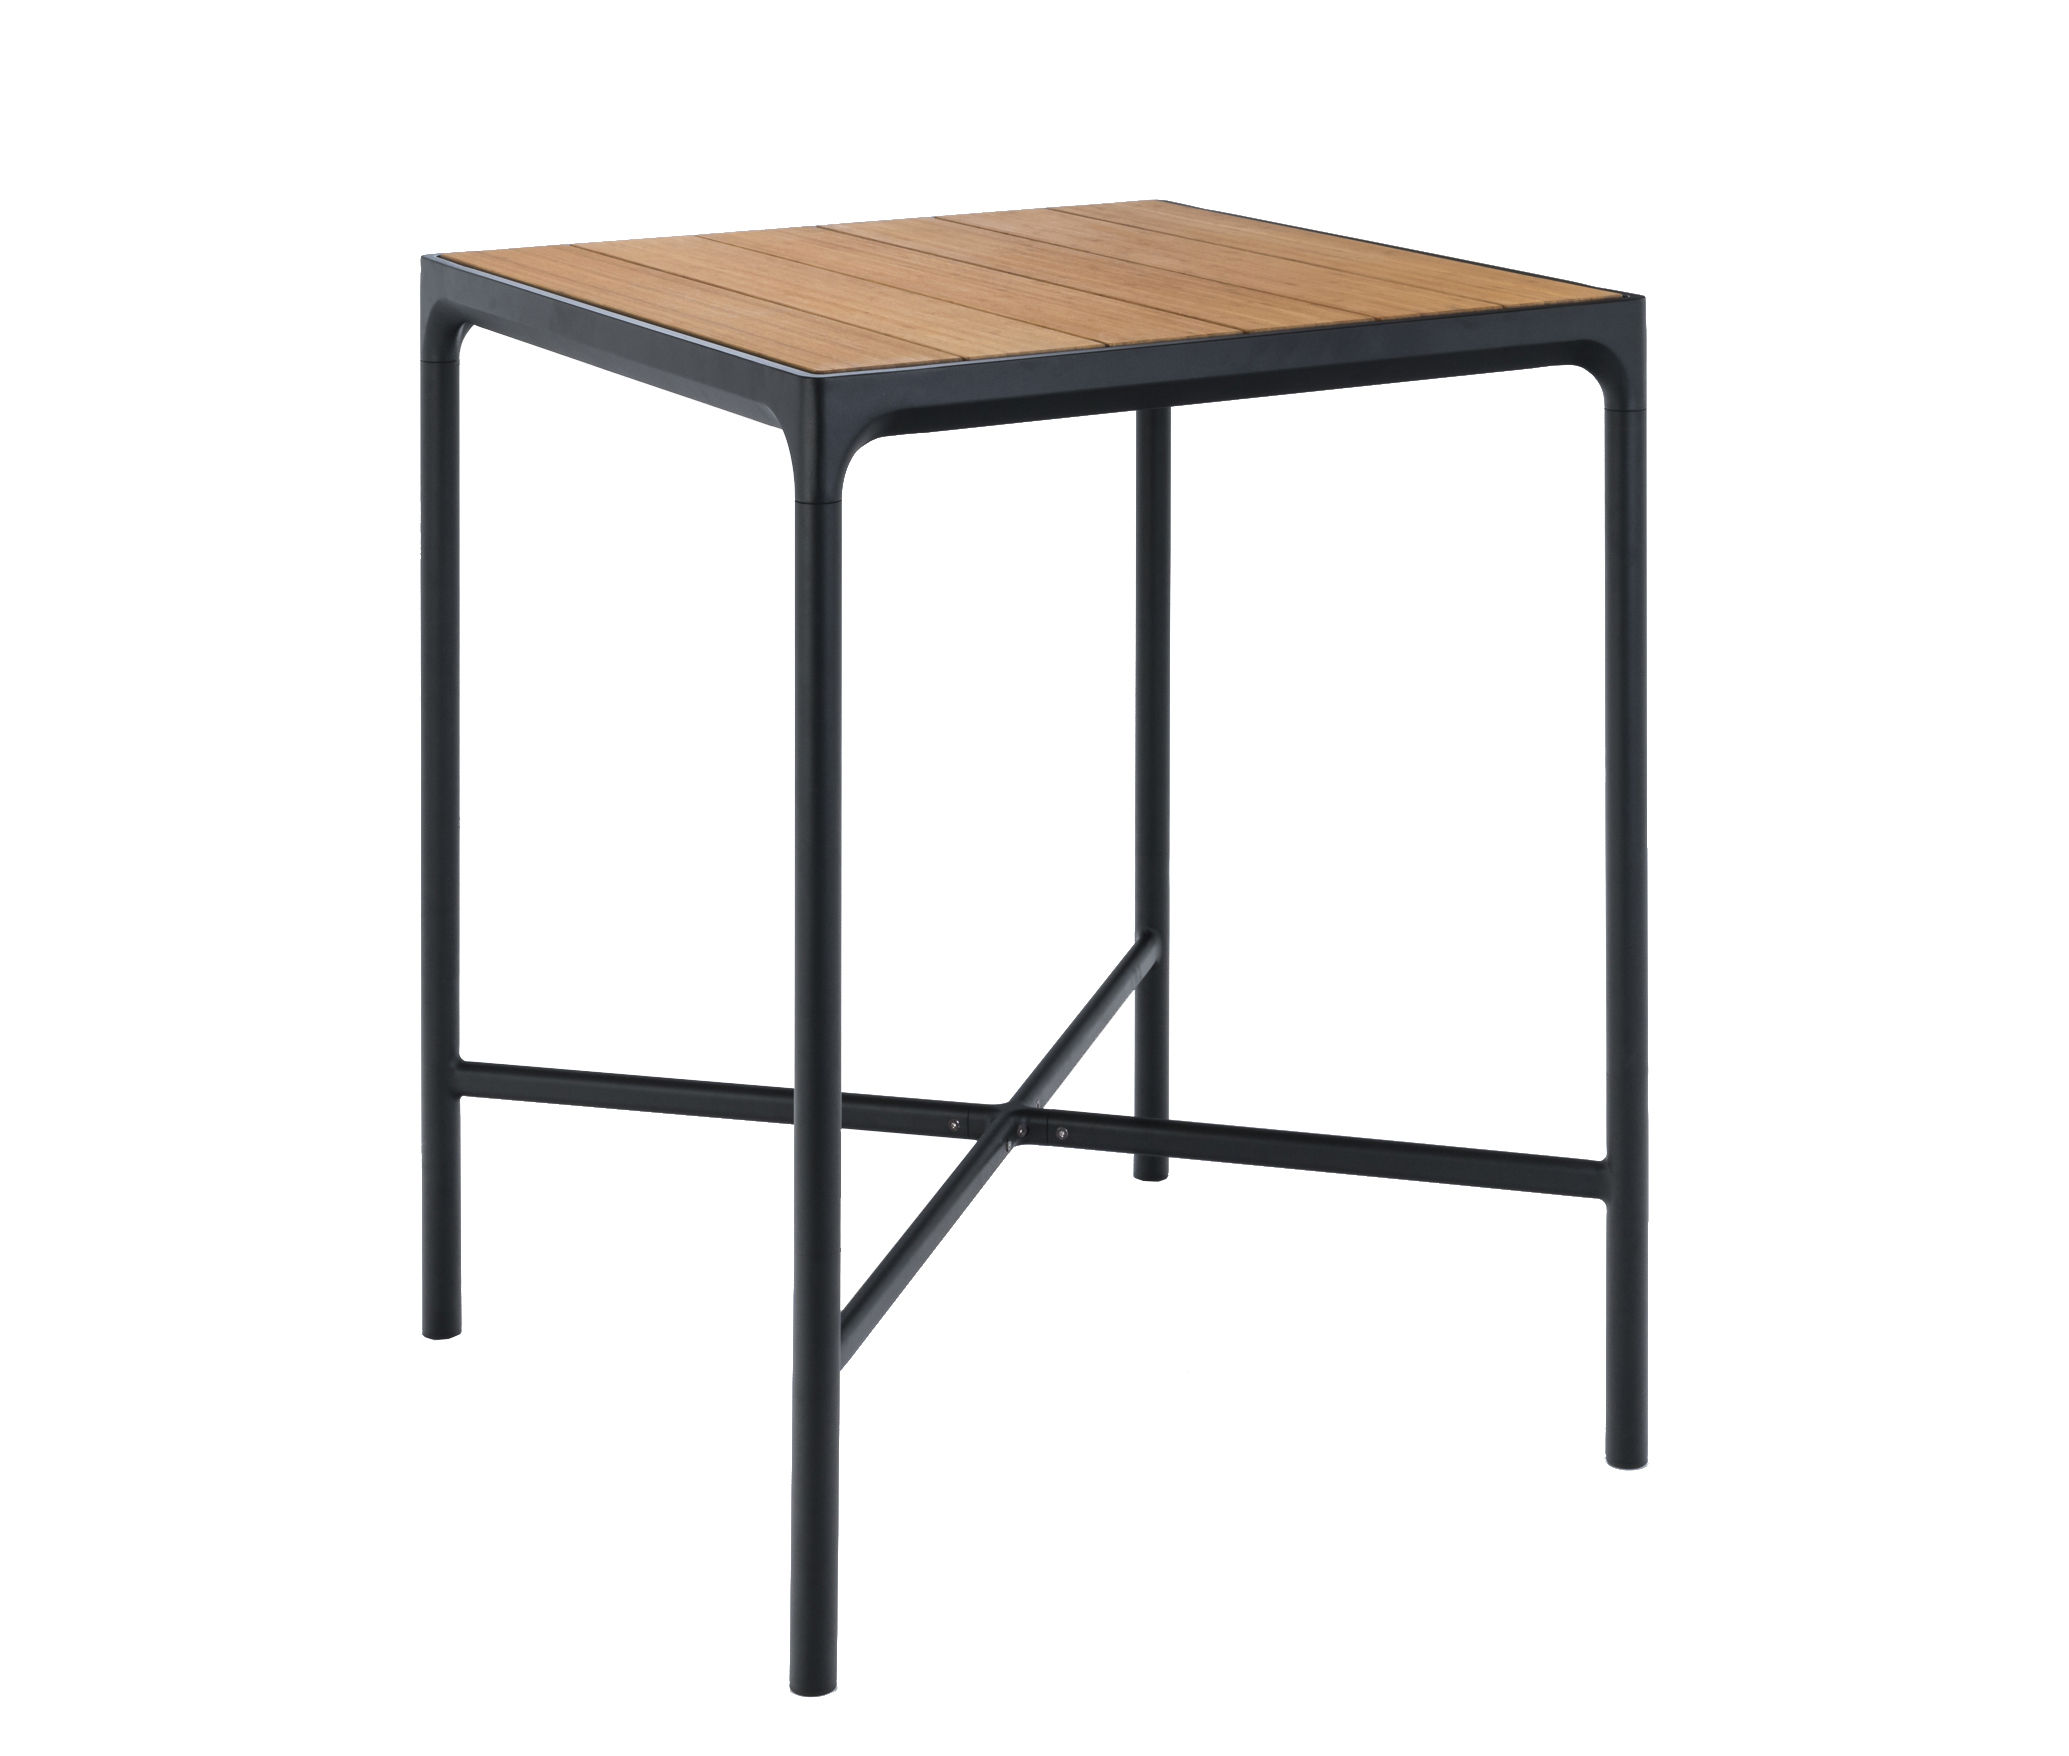 Furniture - High Tables - Four High table - / L 90 x H 111 cm by Houe - Bamboo / Black legs - Aluminium, Bamboo